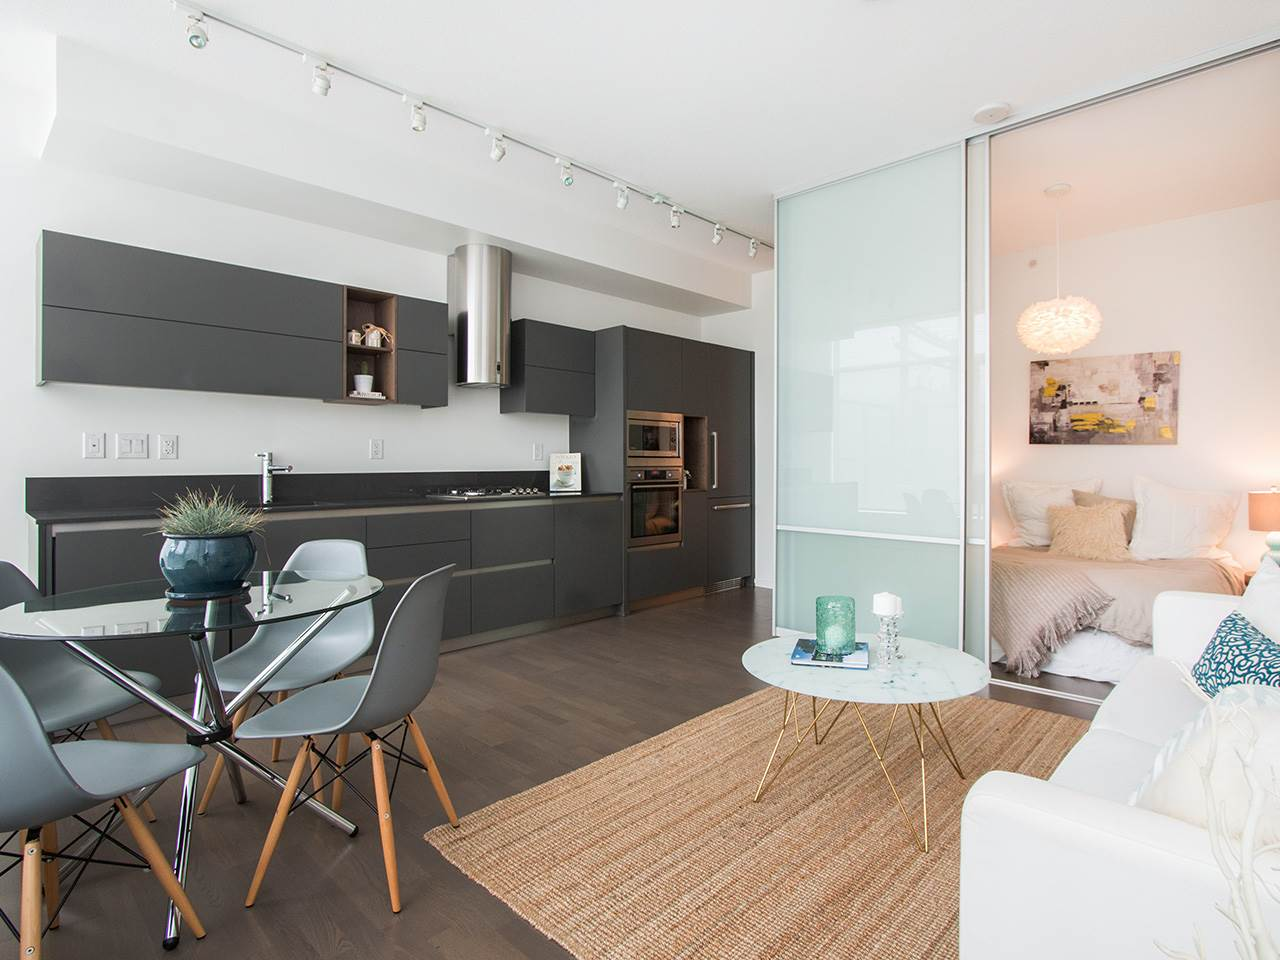 Awesome real estate listing photos - 201-133 e 8th ave